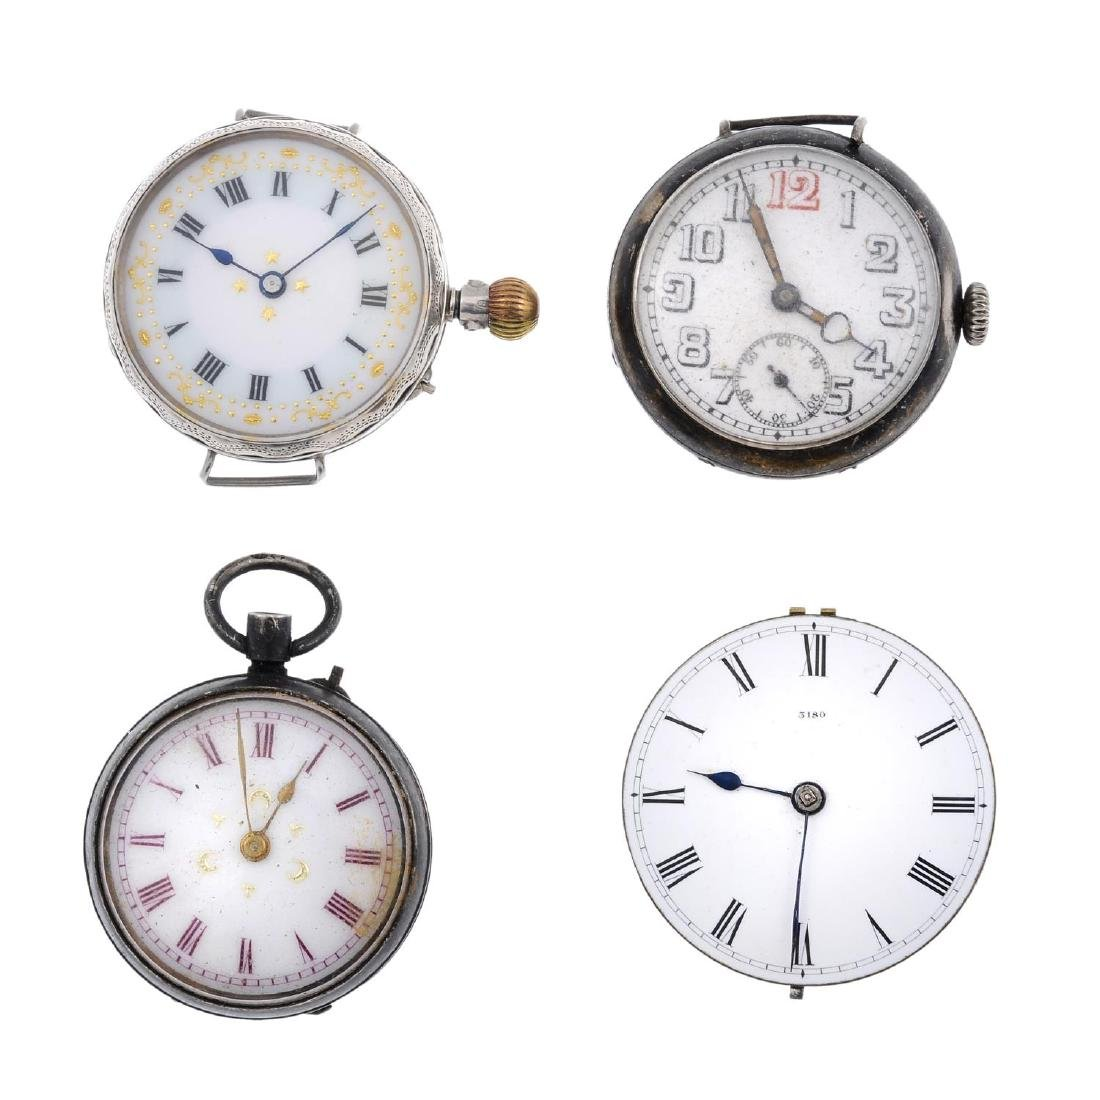 A group of six assorted watches, a pocket watch and a